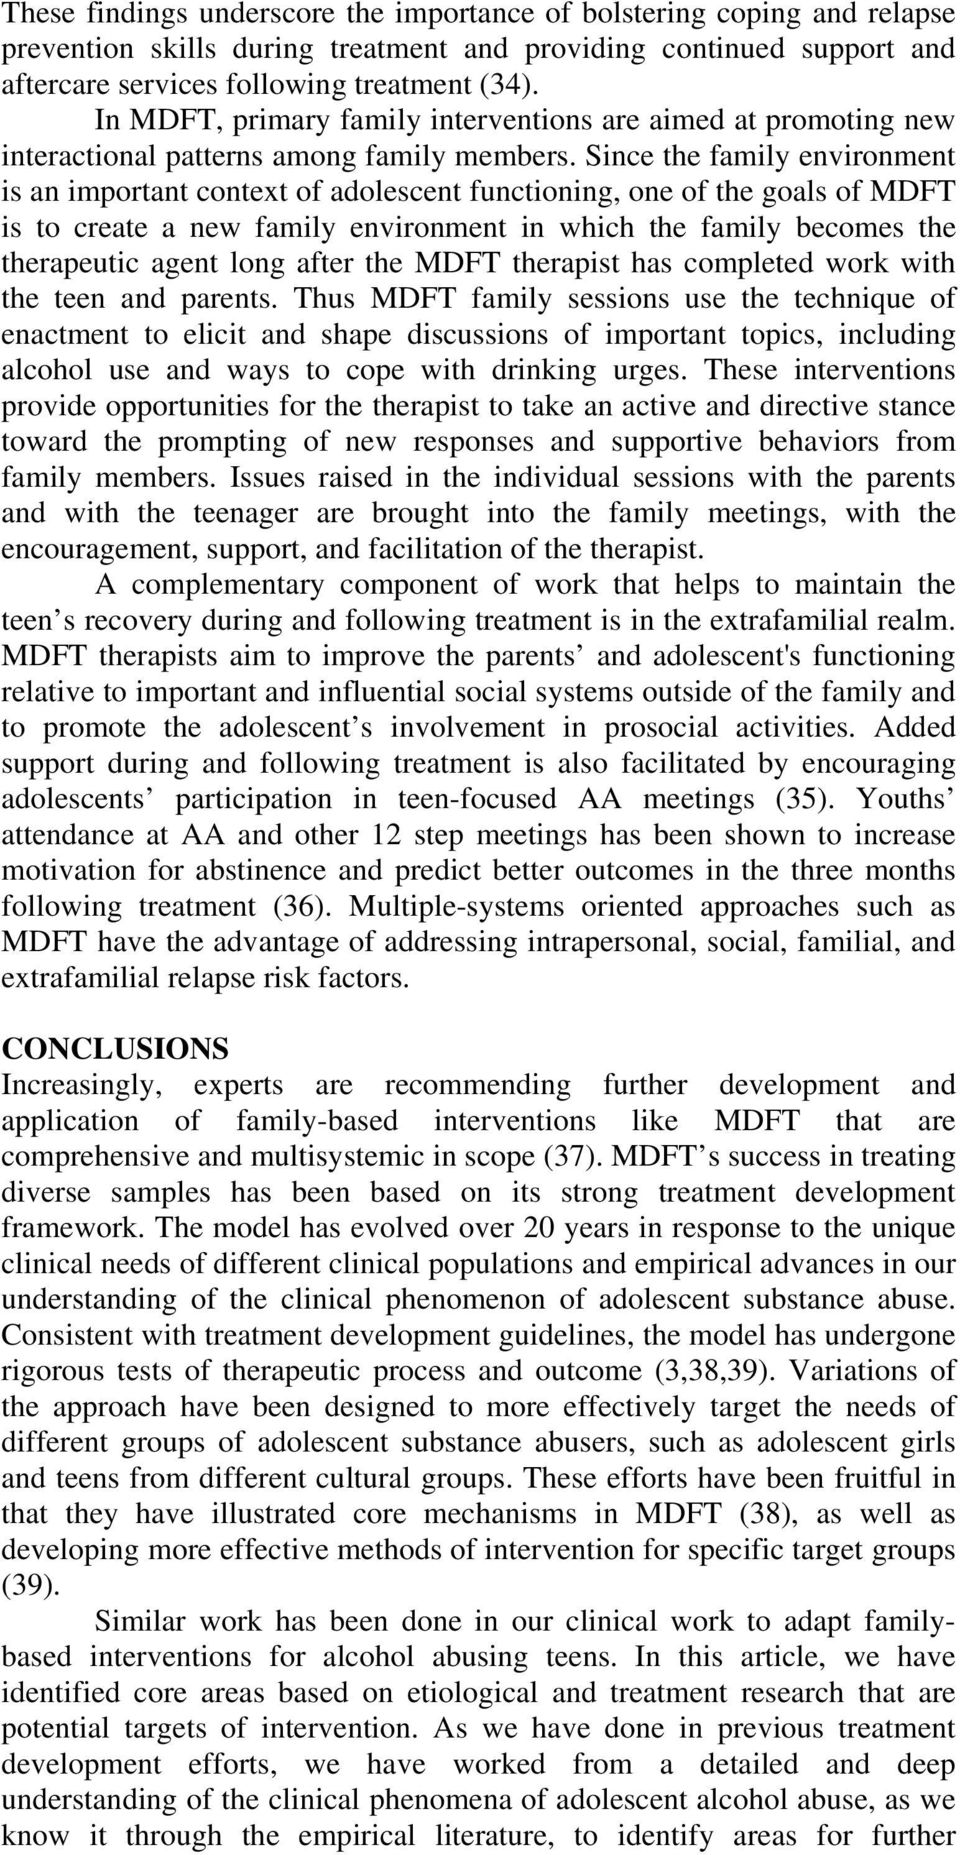 Since the family environment is an important context of adolescent functioning, one of the goals of MDFT is to create a new family environment in which the family becomes the therapeutic agent long